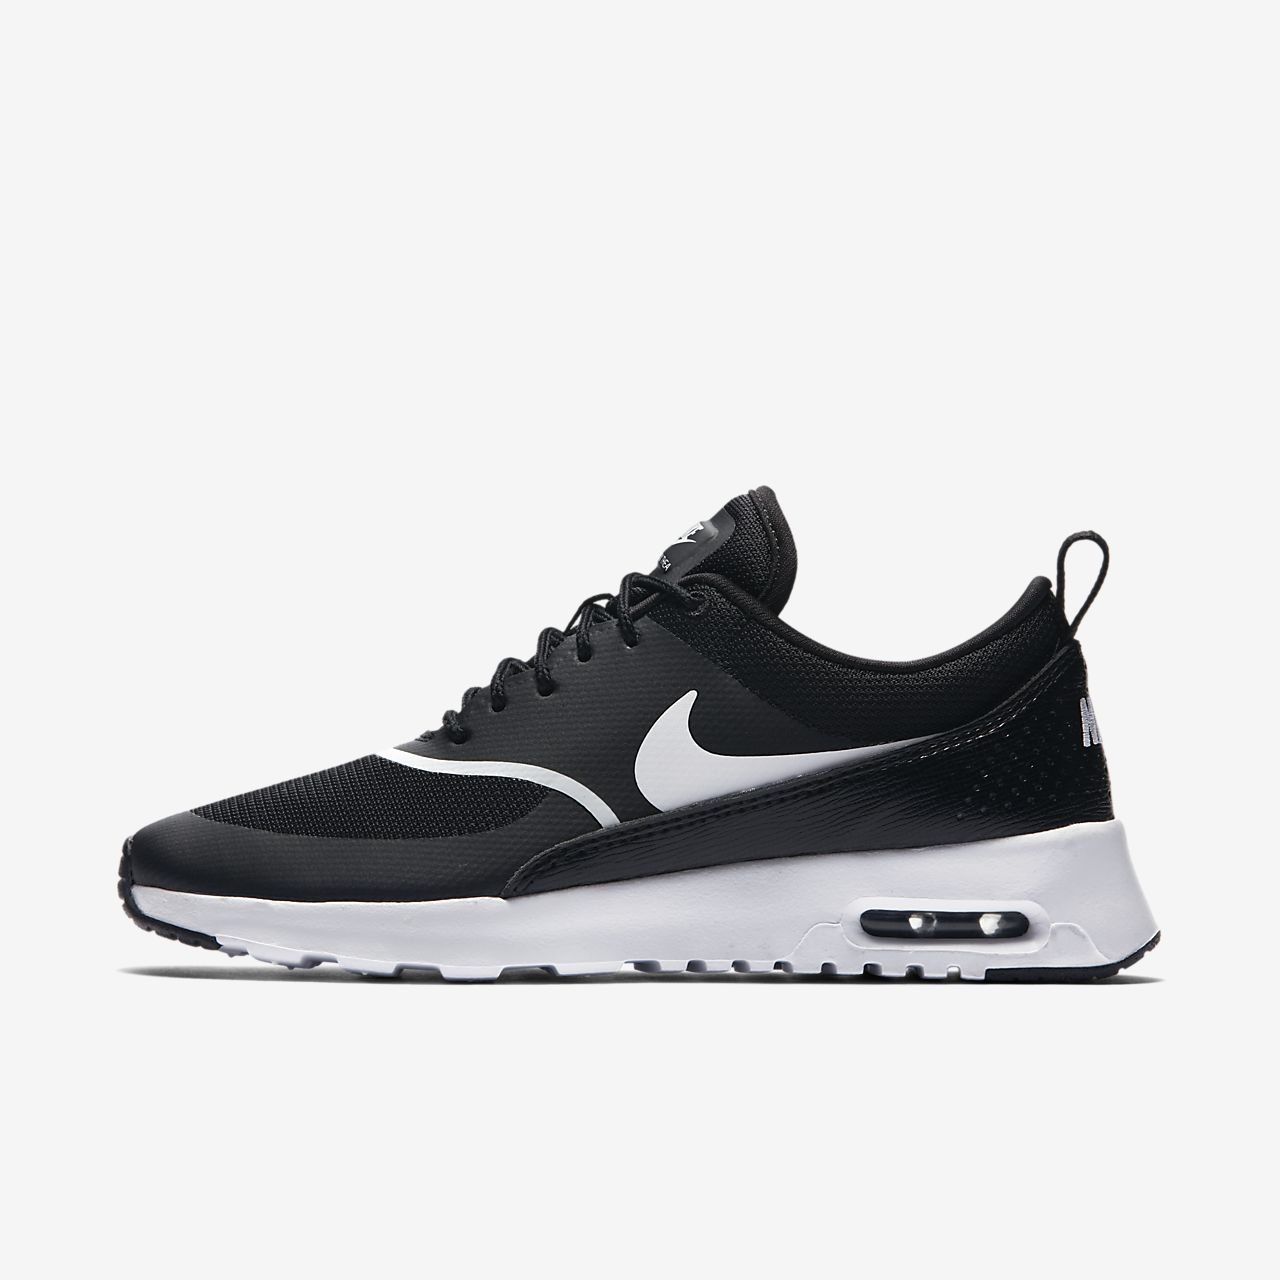 uk availability 09c71 f1ef7 ... Nike Air Max Thea Damenschuh